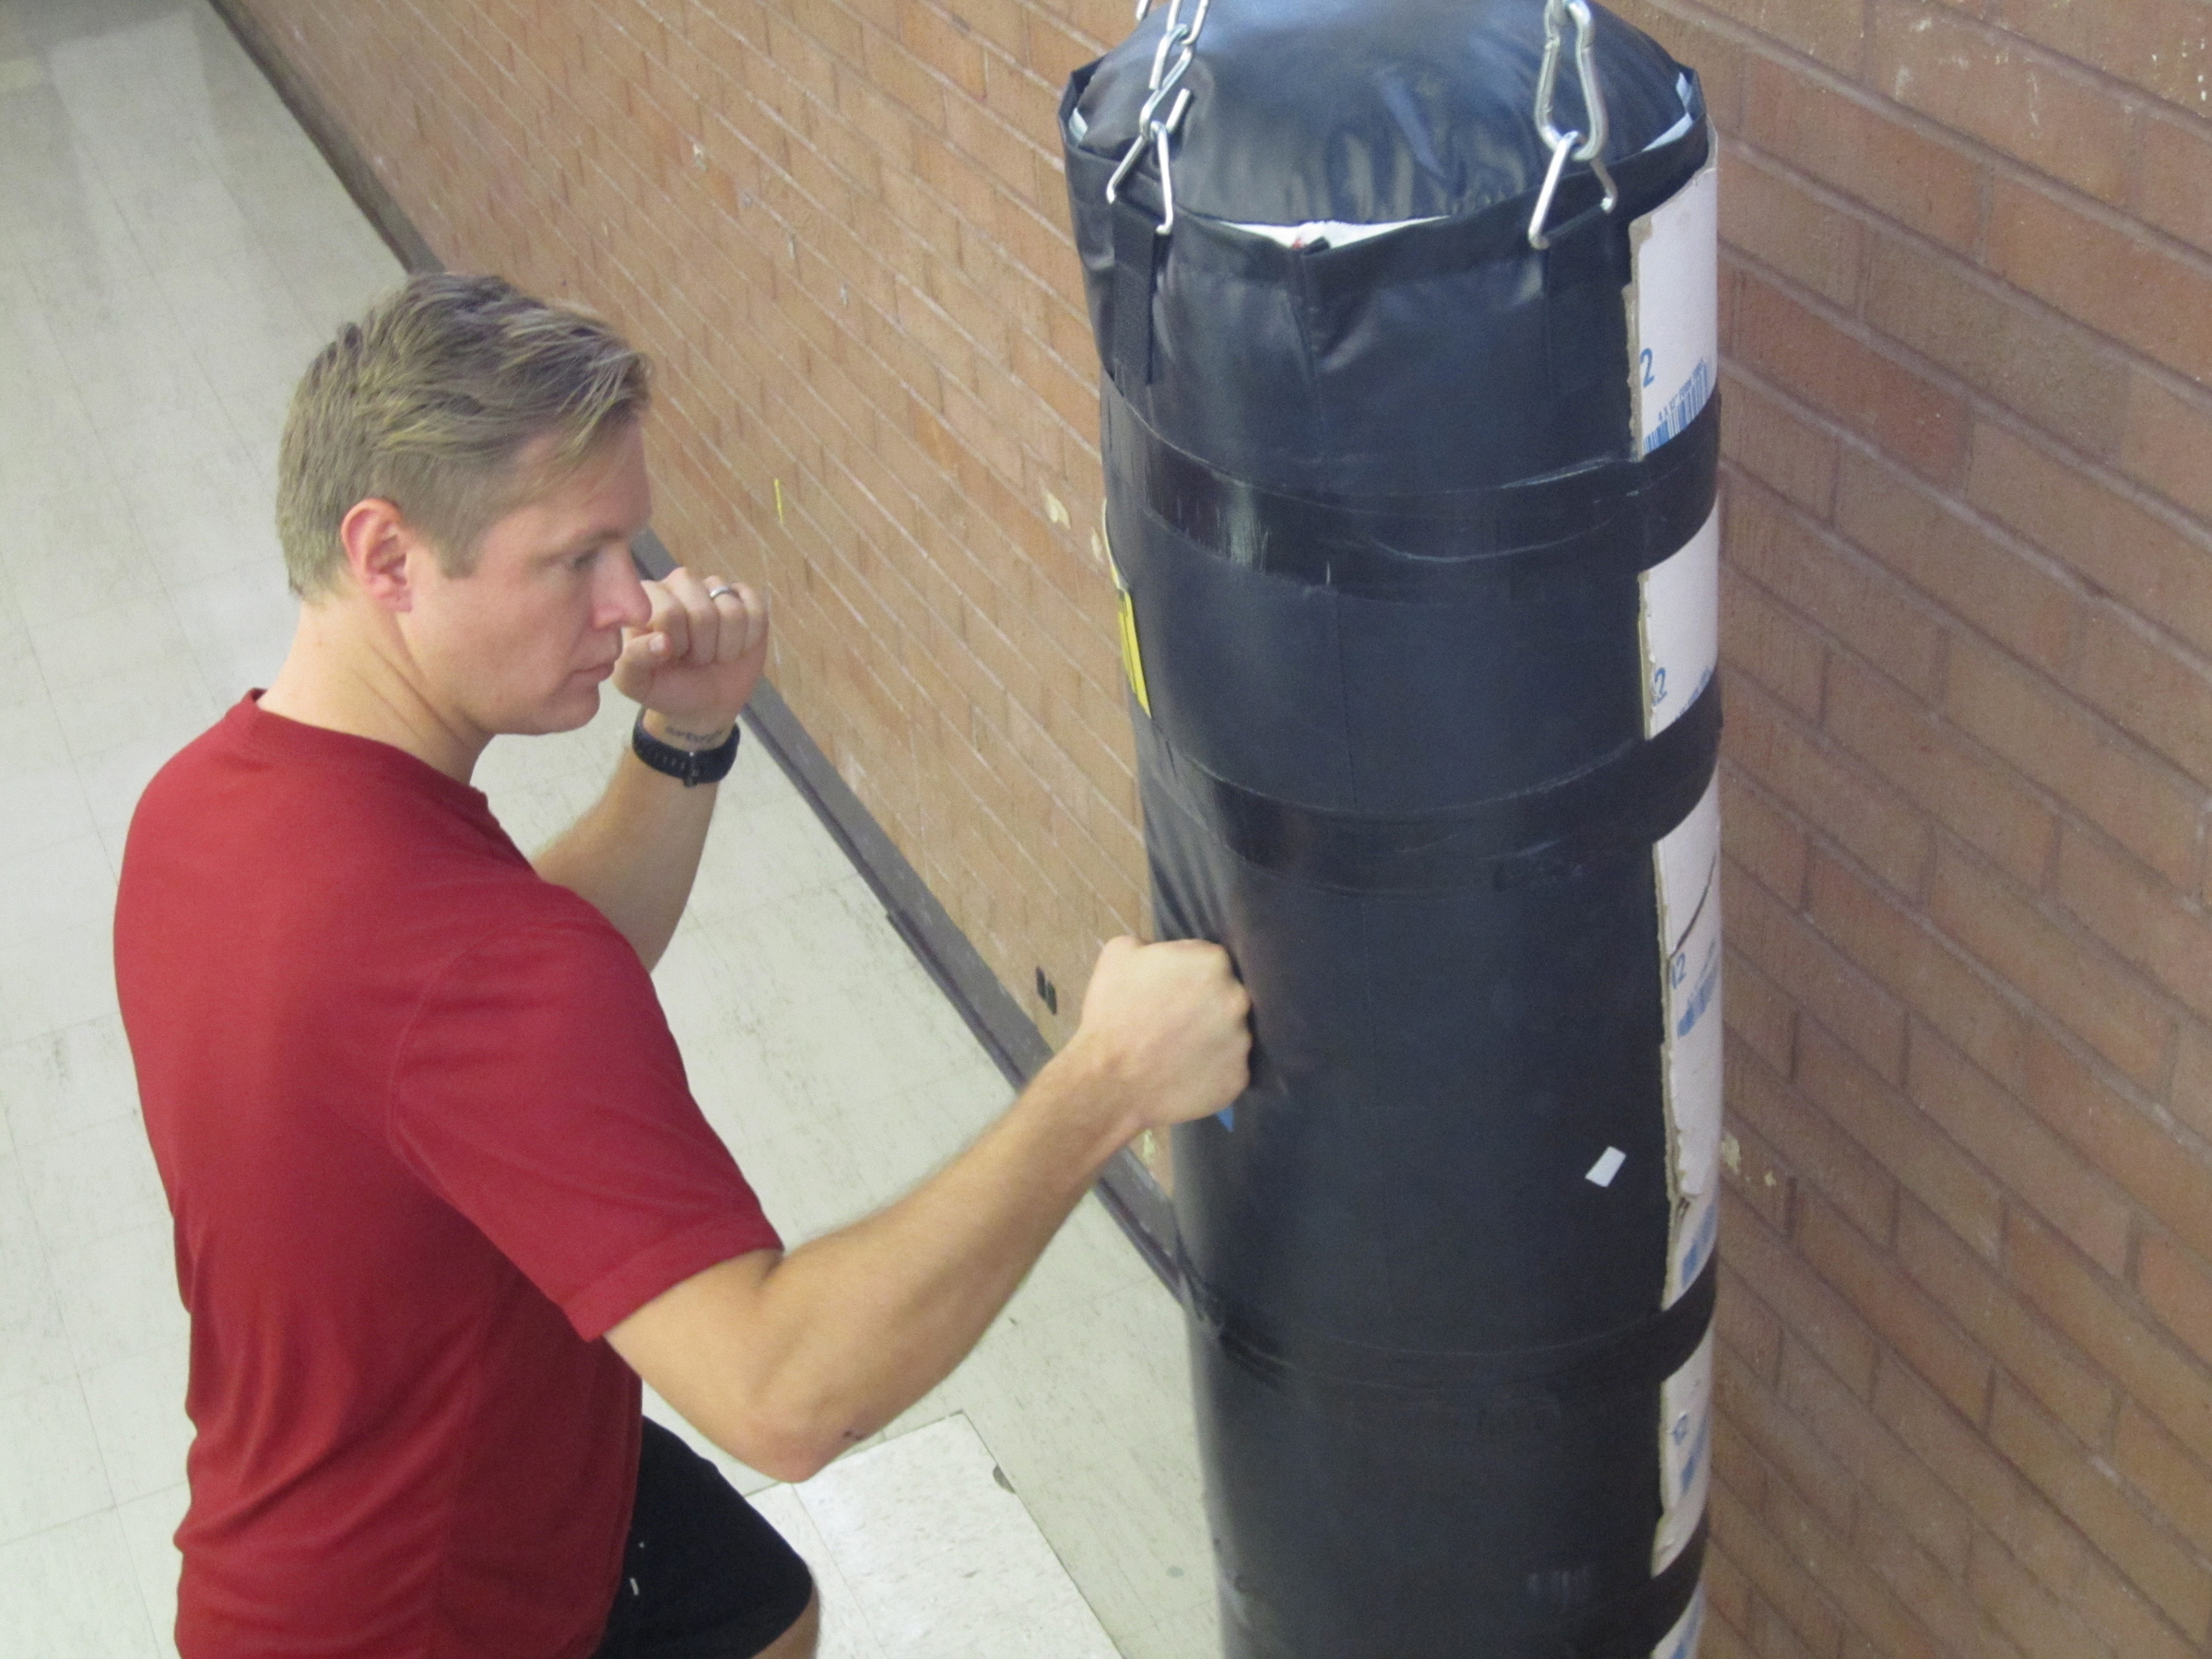 University of Utah medical student Michael H. Morgan strikes a punching bag that was used by Morgan and university biology Professor David Carrier in a study that suggests human hands evolved for fighting with fists, not just for the manual dexterity needed to use tools, play musical instruments and paint artworks.